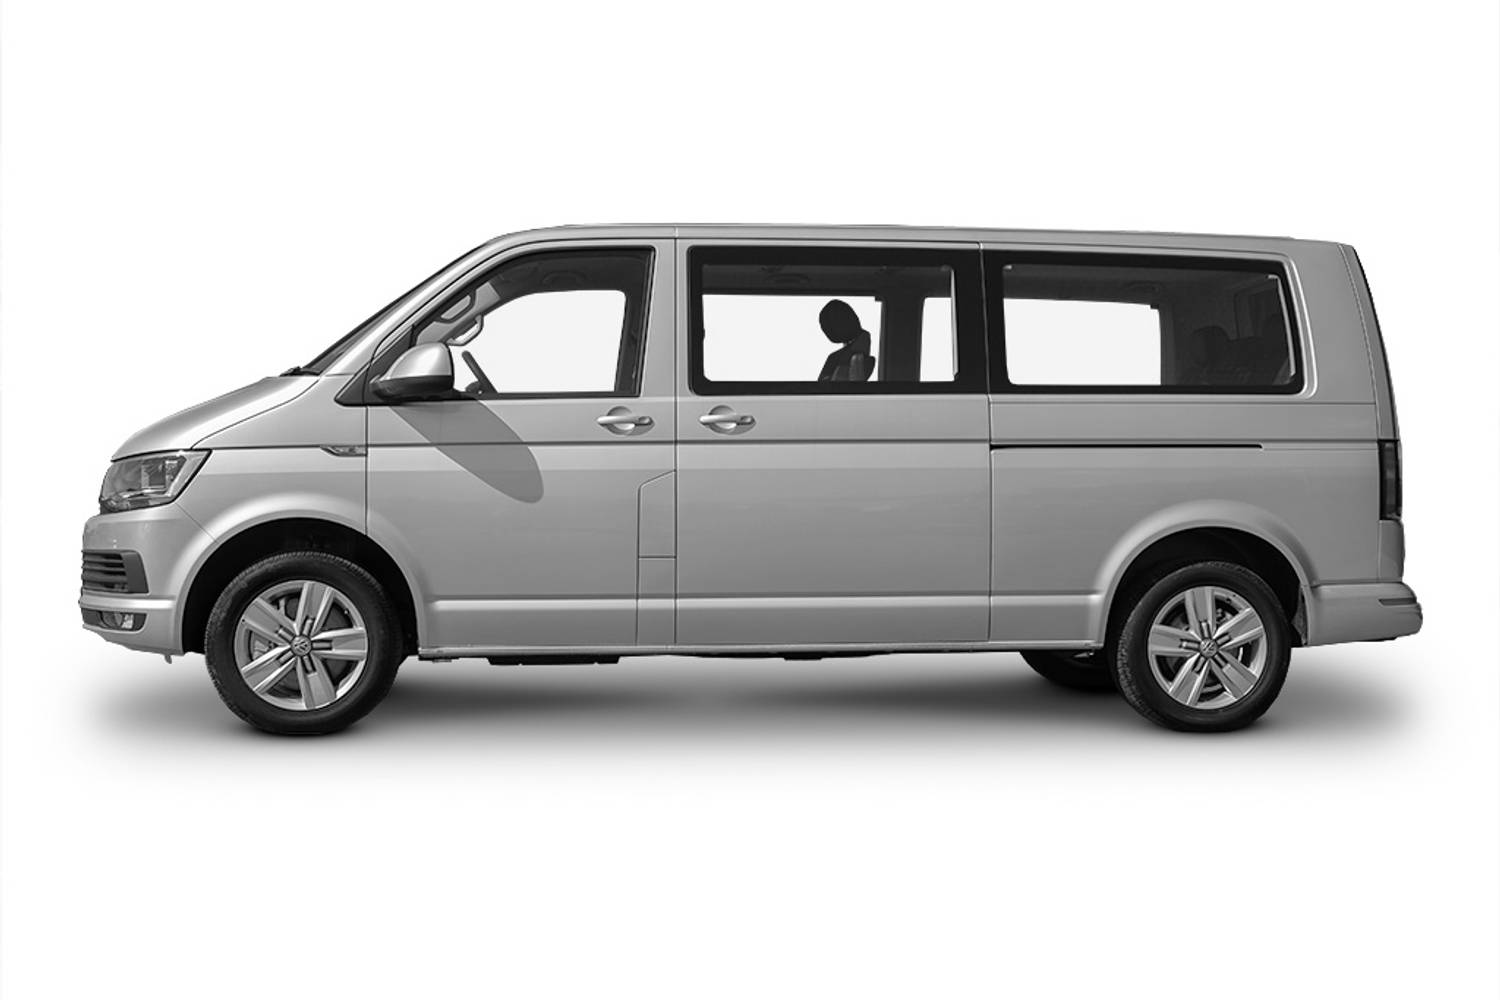 VOLKSWAGEN CARAVELLE 2 0 TDI BMT (199 PS) Executive 4MOTION